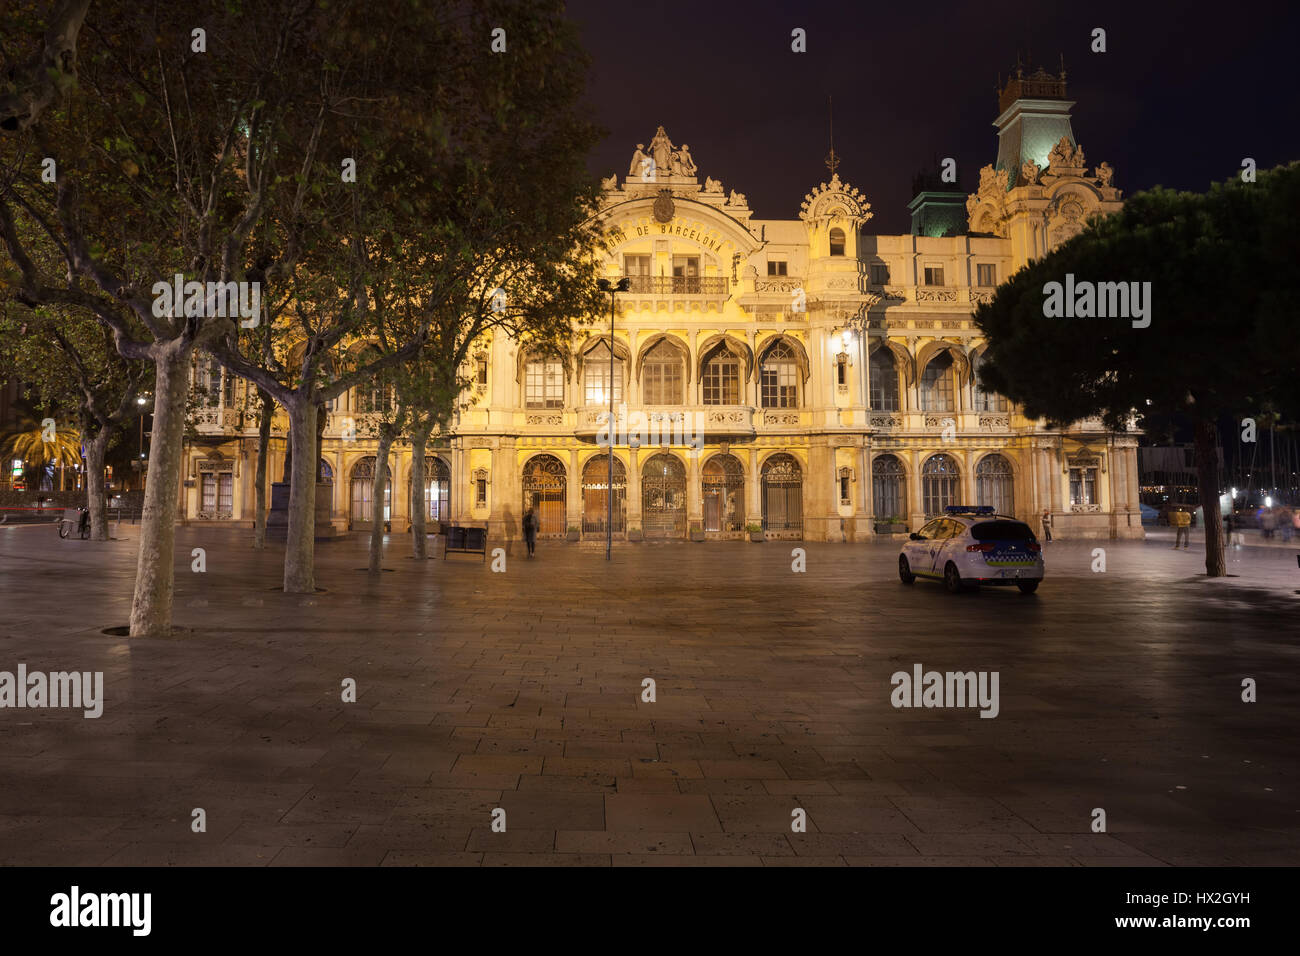 Headquarters building of the Port Authority of Barcelona at night in Catalonia, Spain - Stock Image